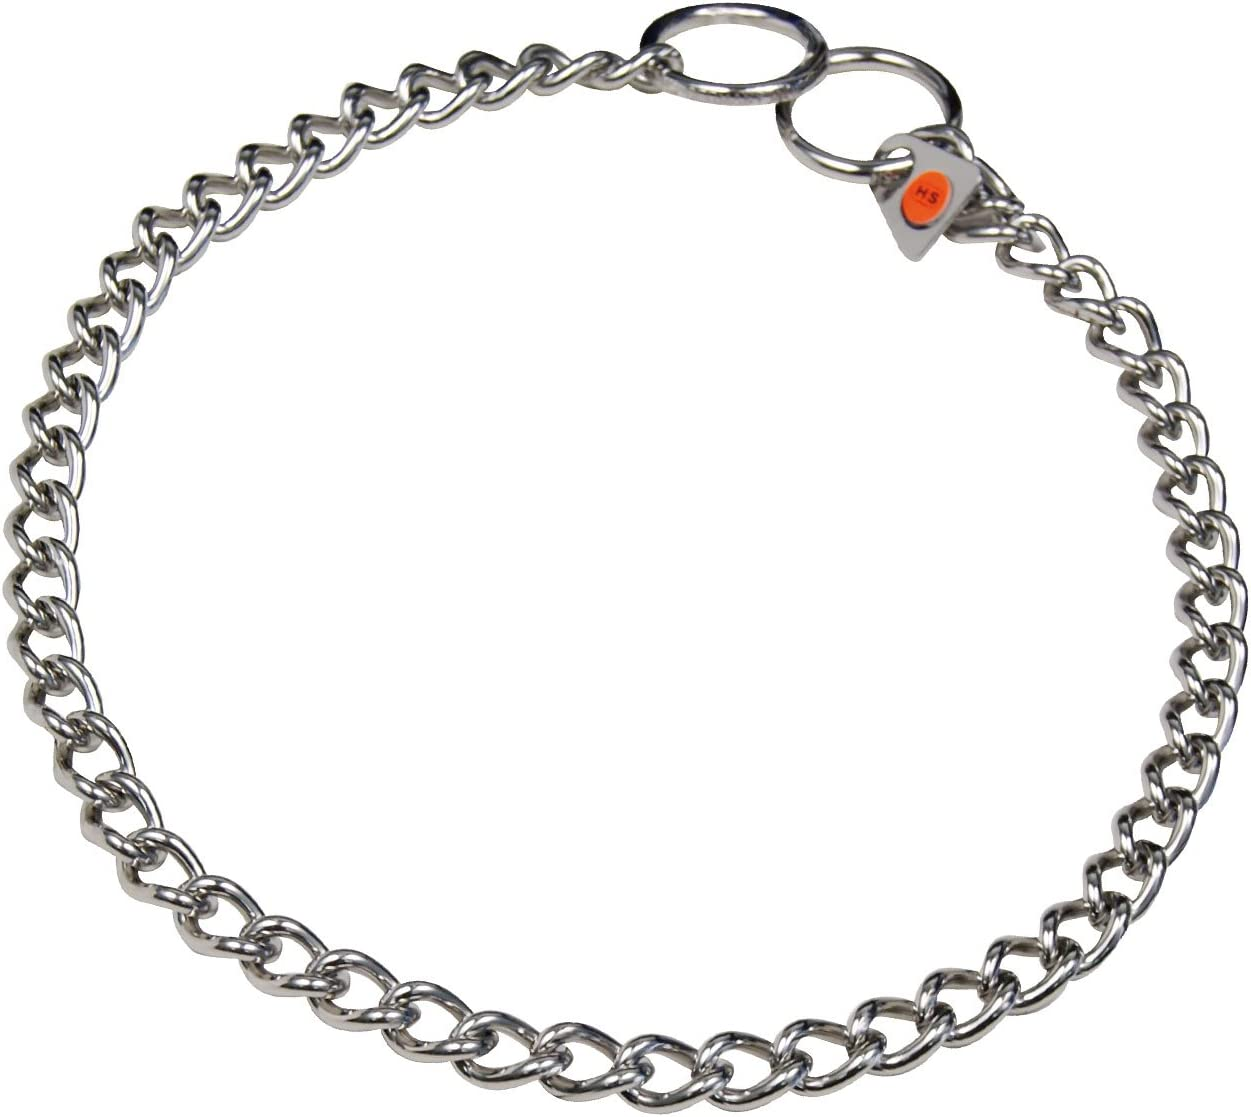 SALENEW very popular Sprenger 5090306555 Twisted Max 40% OFF Necklace Link